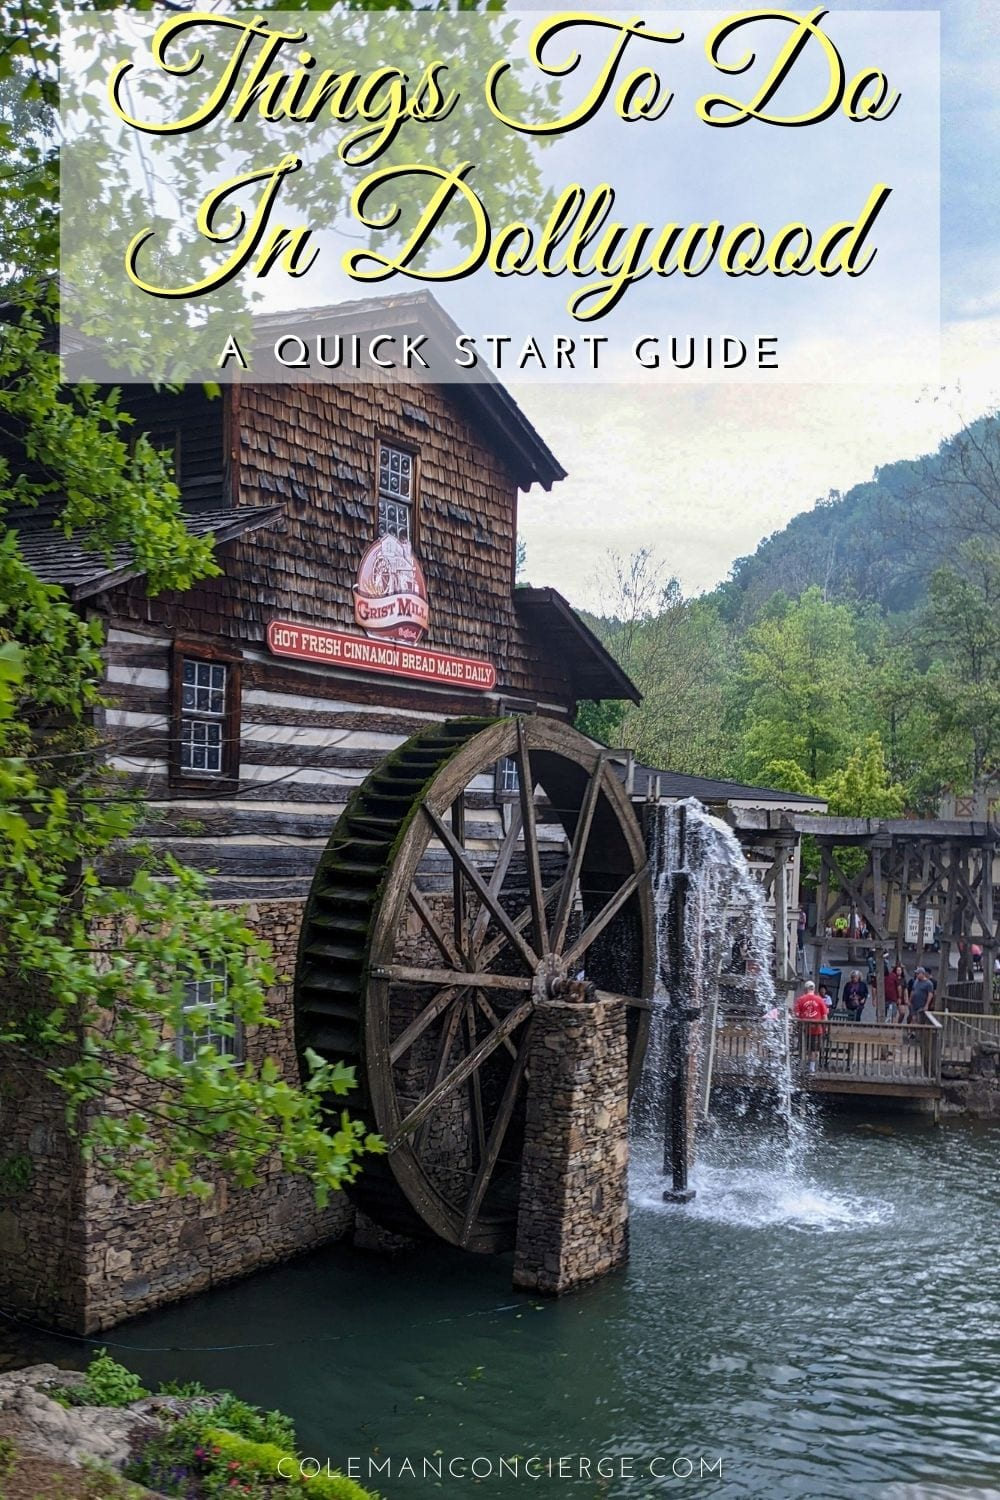 Image of the Grist Mill in Dollywood